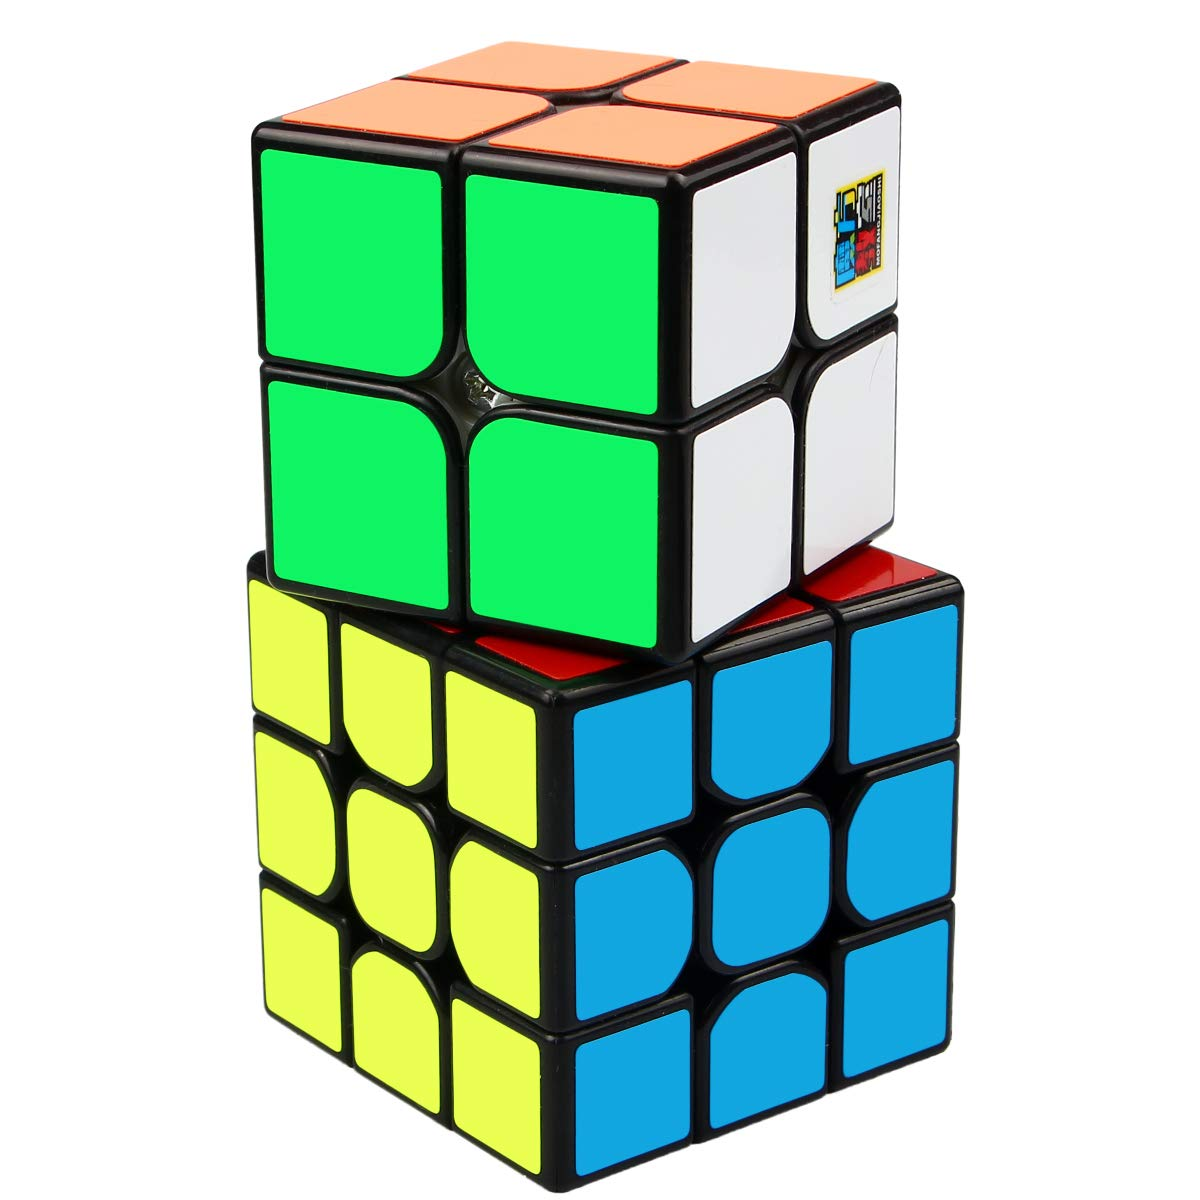 Magic Cube Set of 2x2x2 3x3x3 Smooth Twist Cube 3D Puzzle Game Aiduy Speed Cube Set